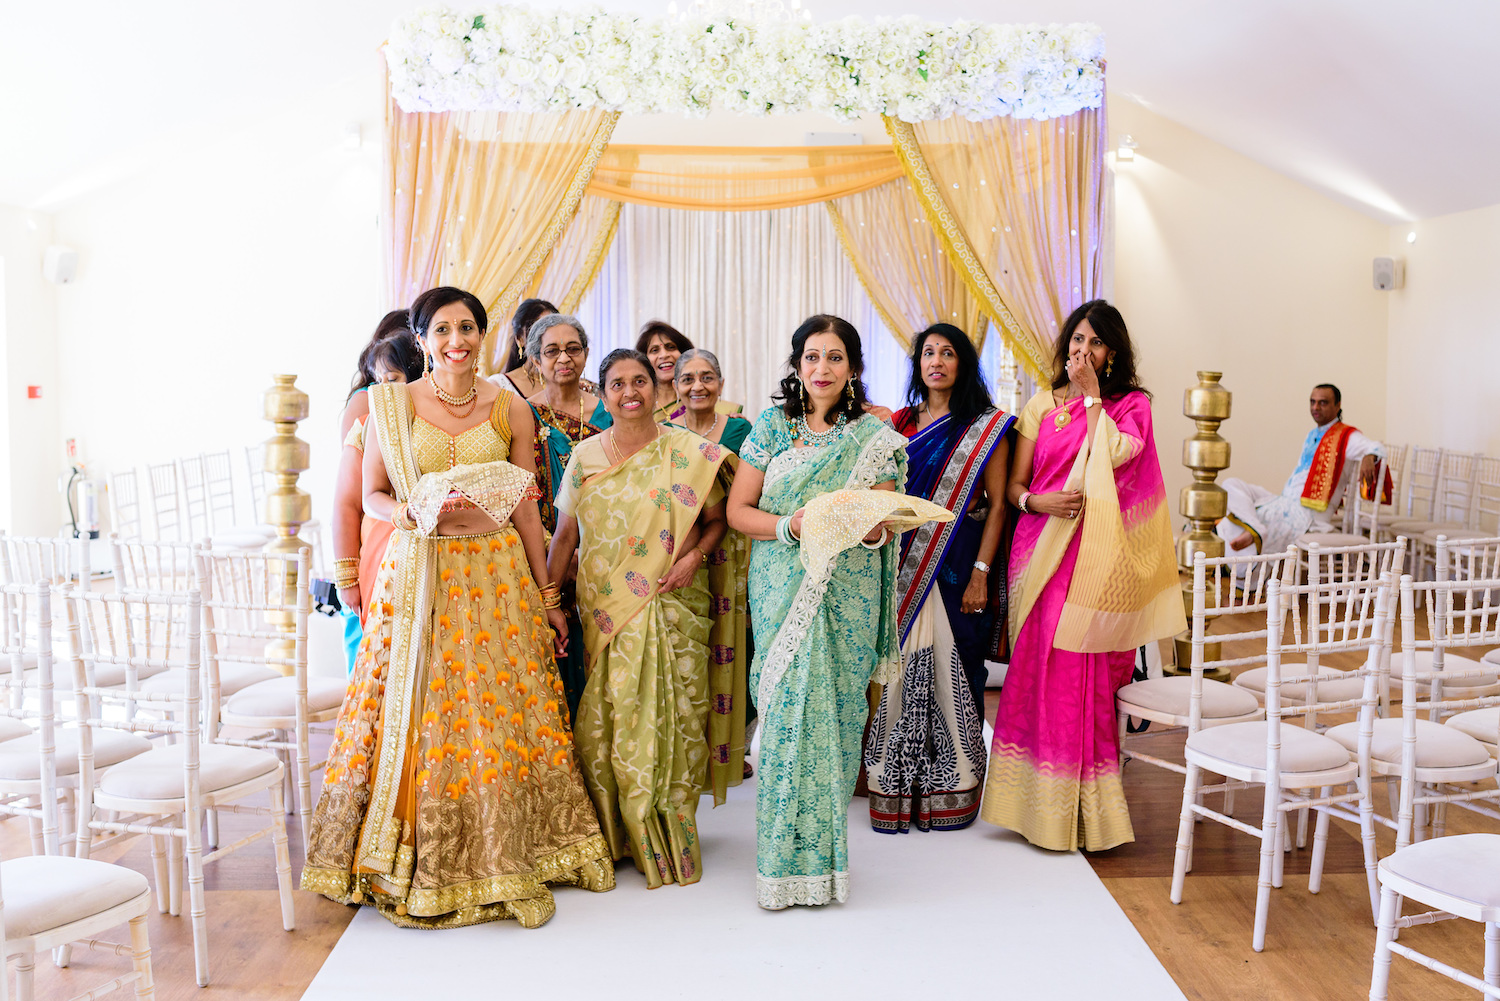 Indian ladies group together Indian wedding